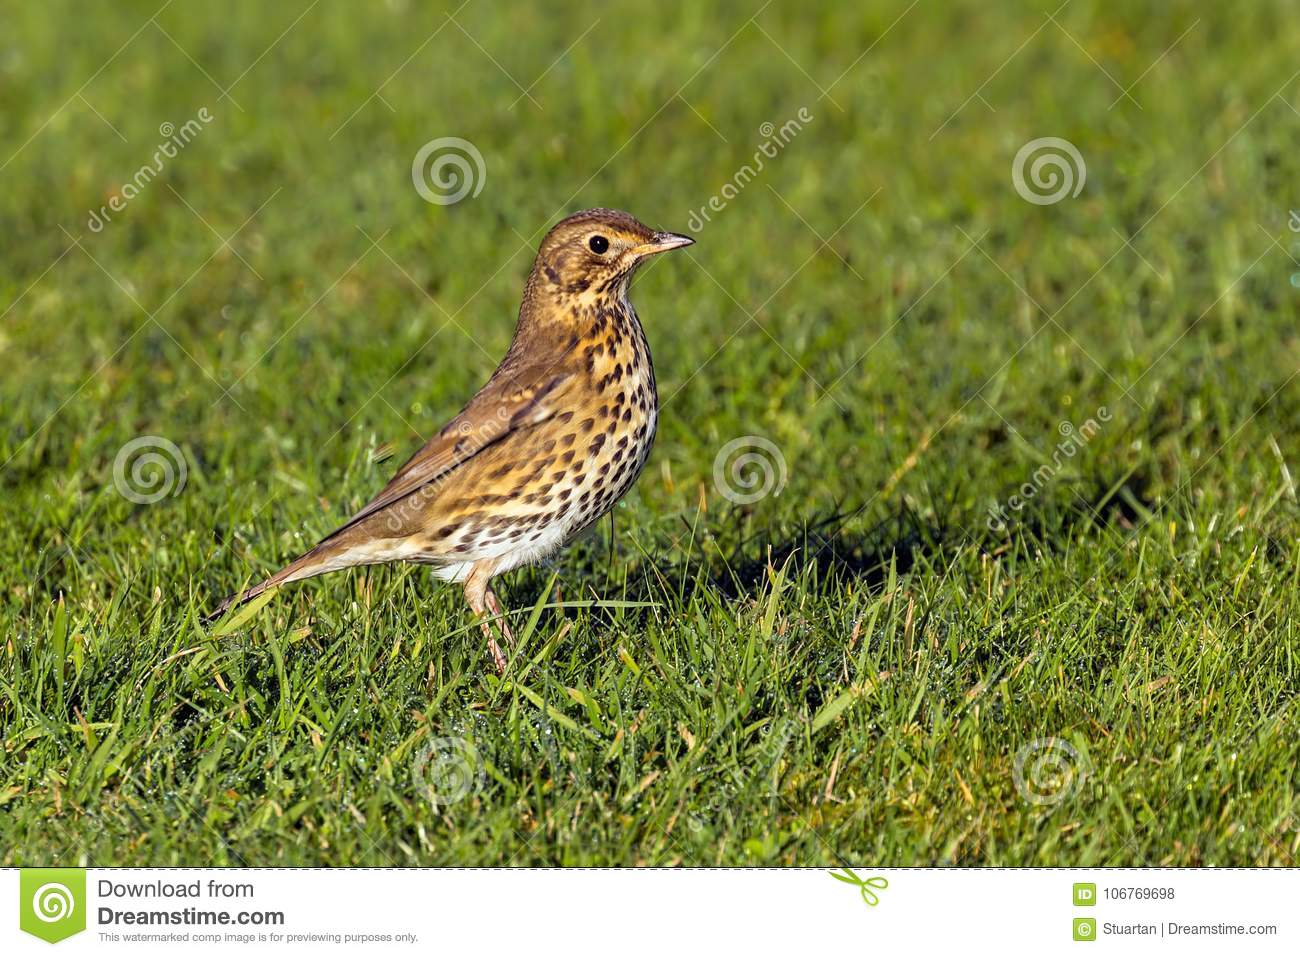 Song Thrush - Turdus philomelos at Croome Park, Worcestershire.